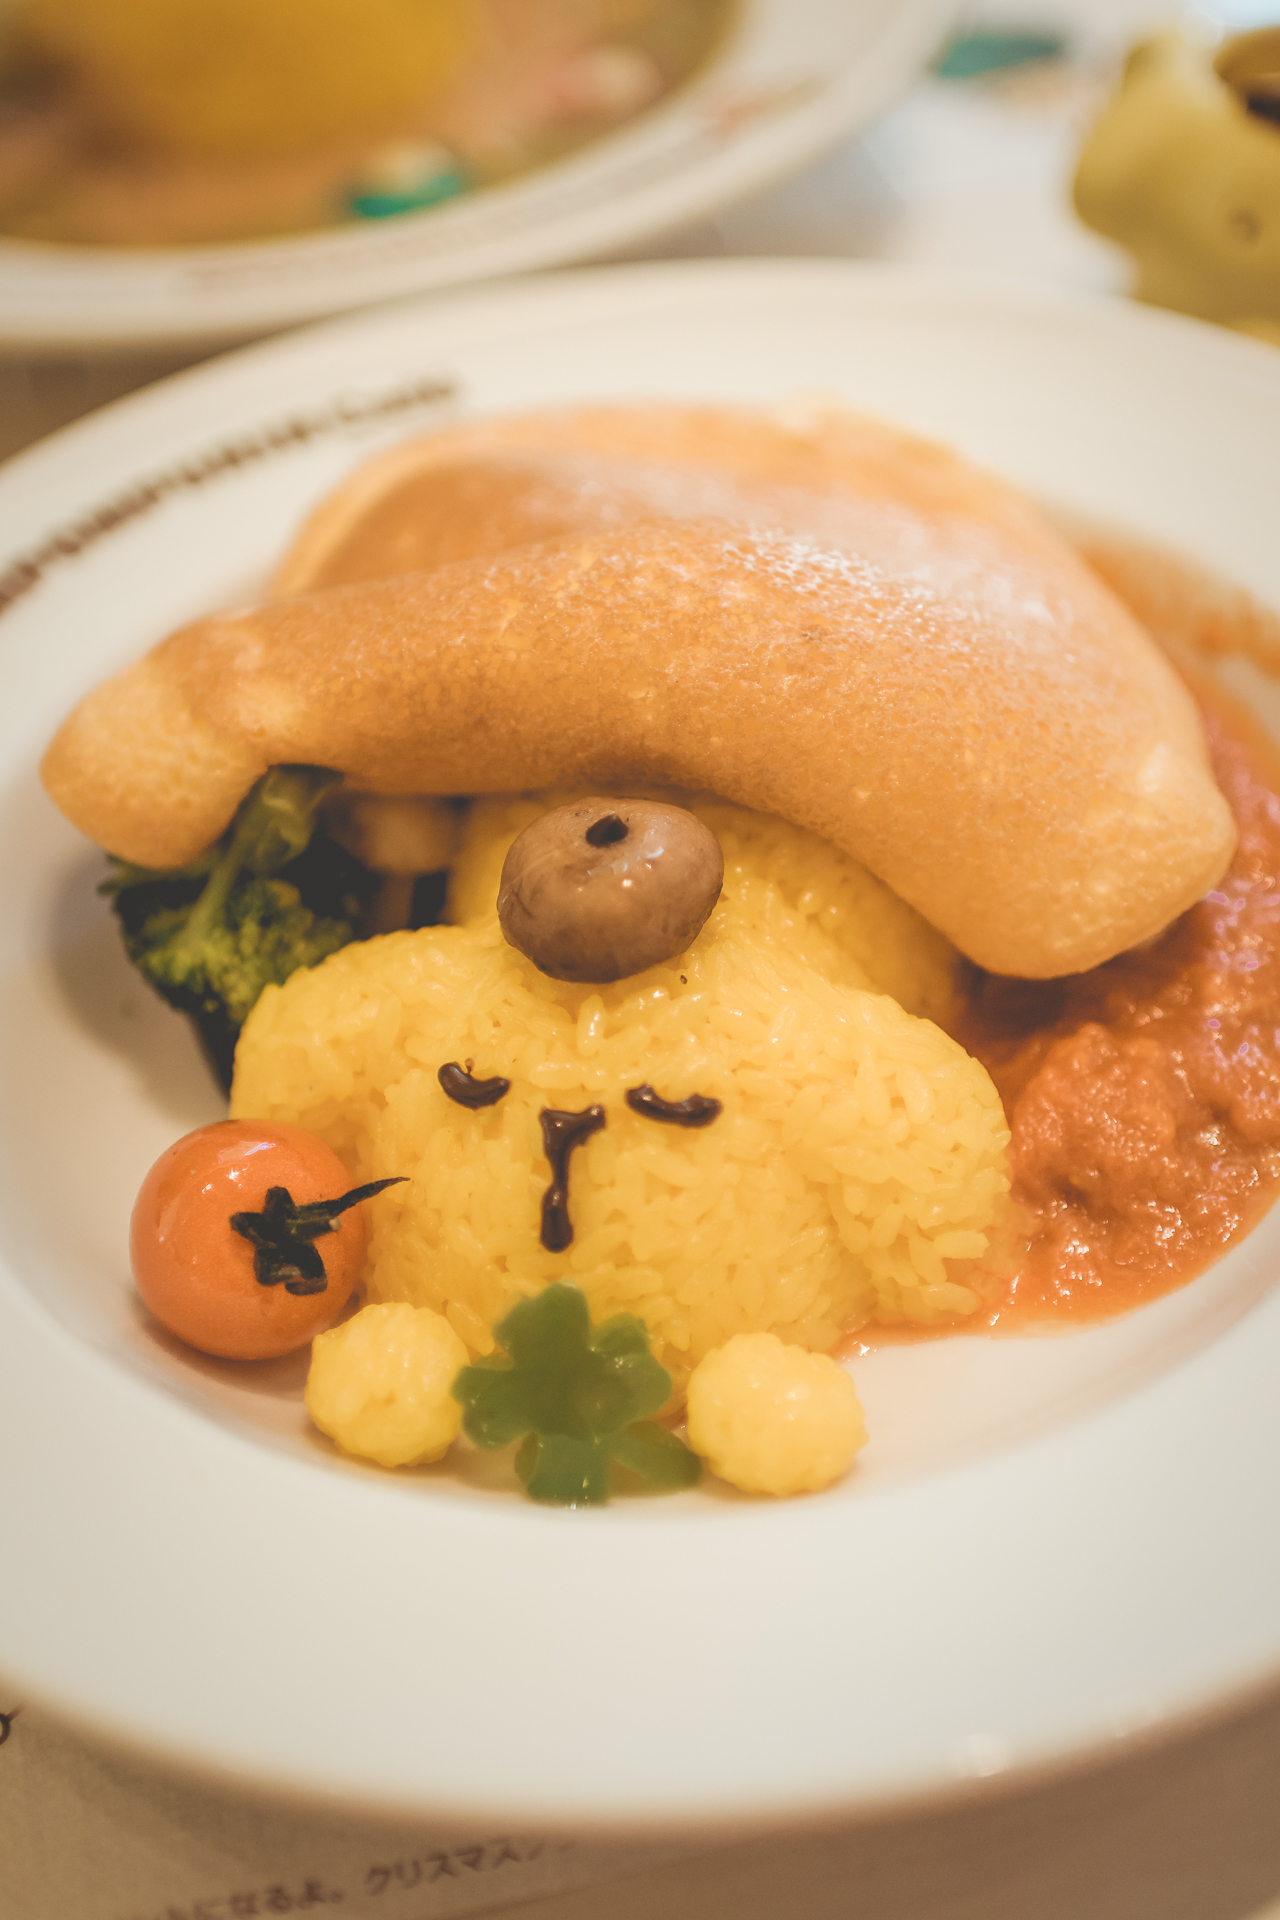 My dish: a fluffy omurice complete with mushroom beret. I honestly haven't stopped thinking about this since.